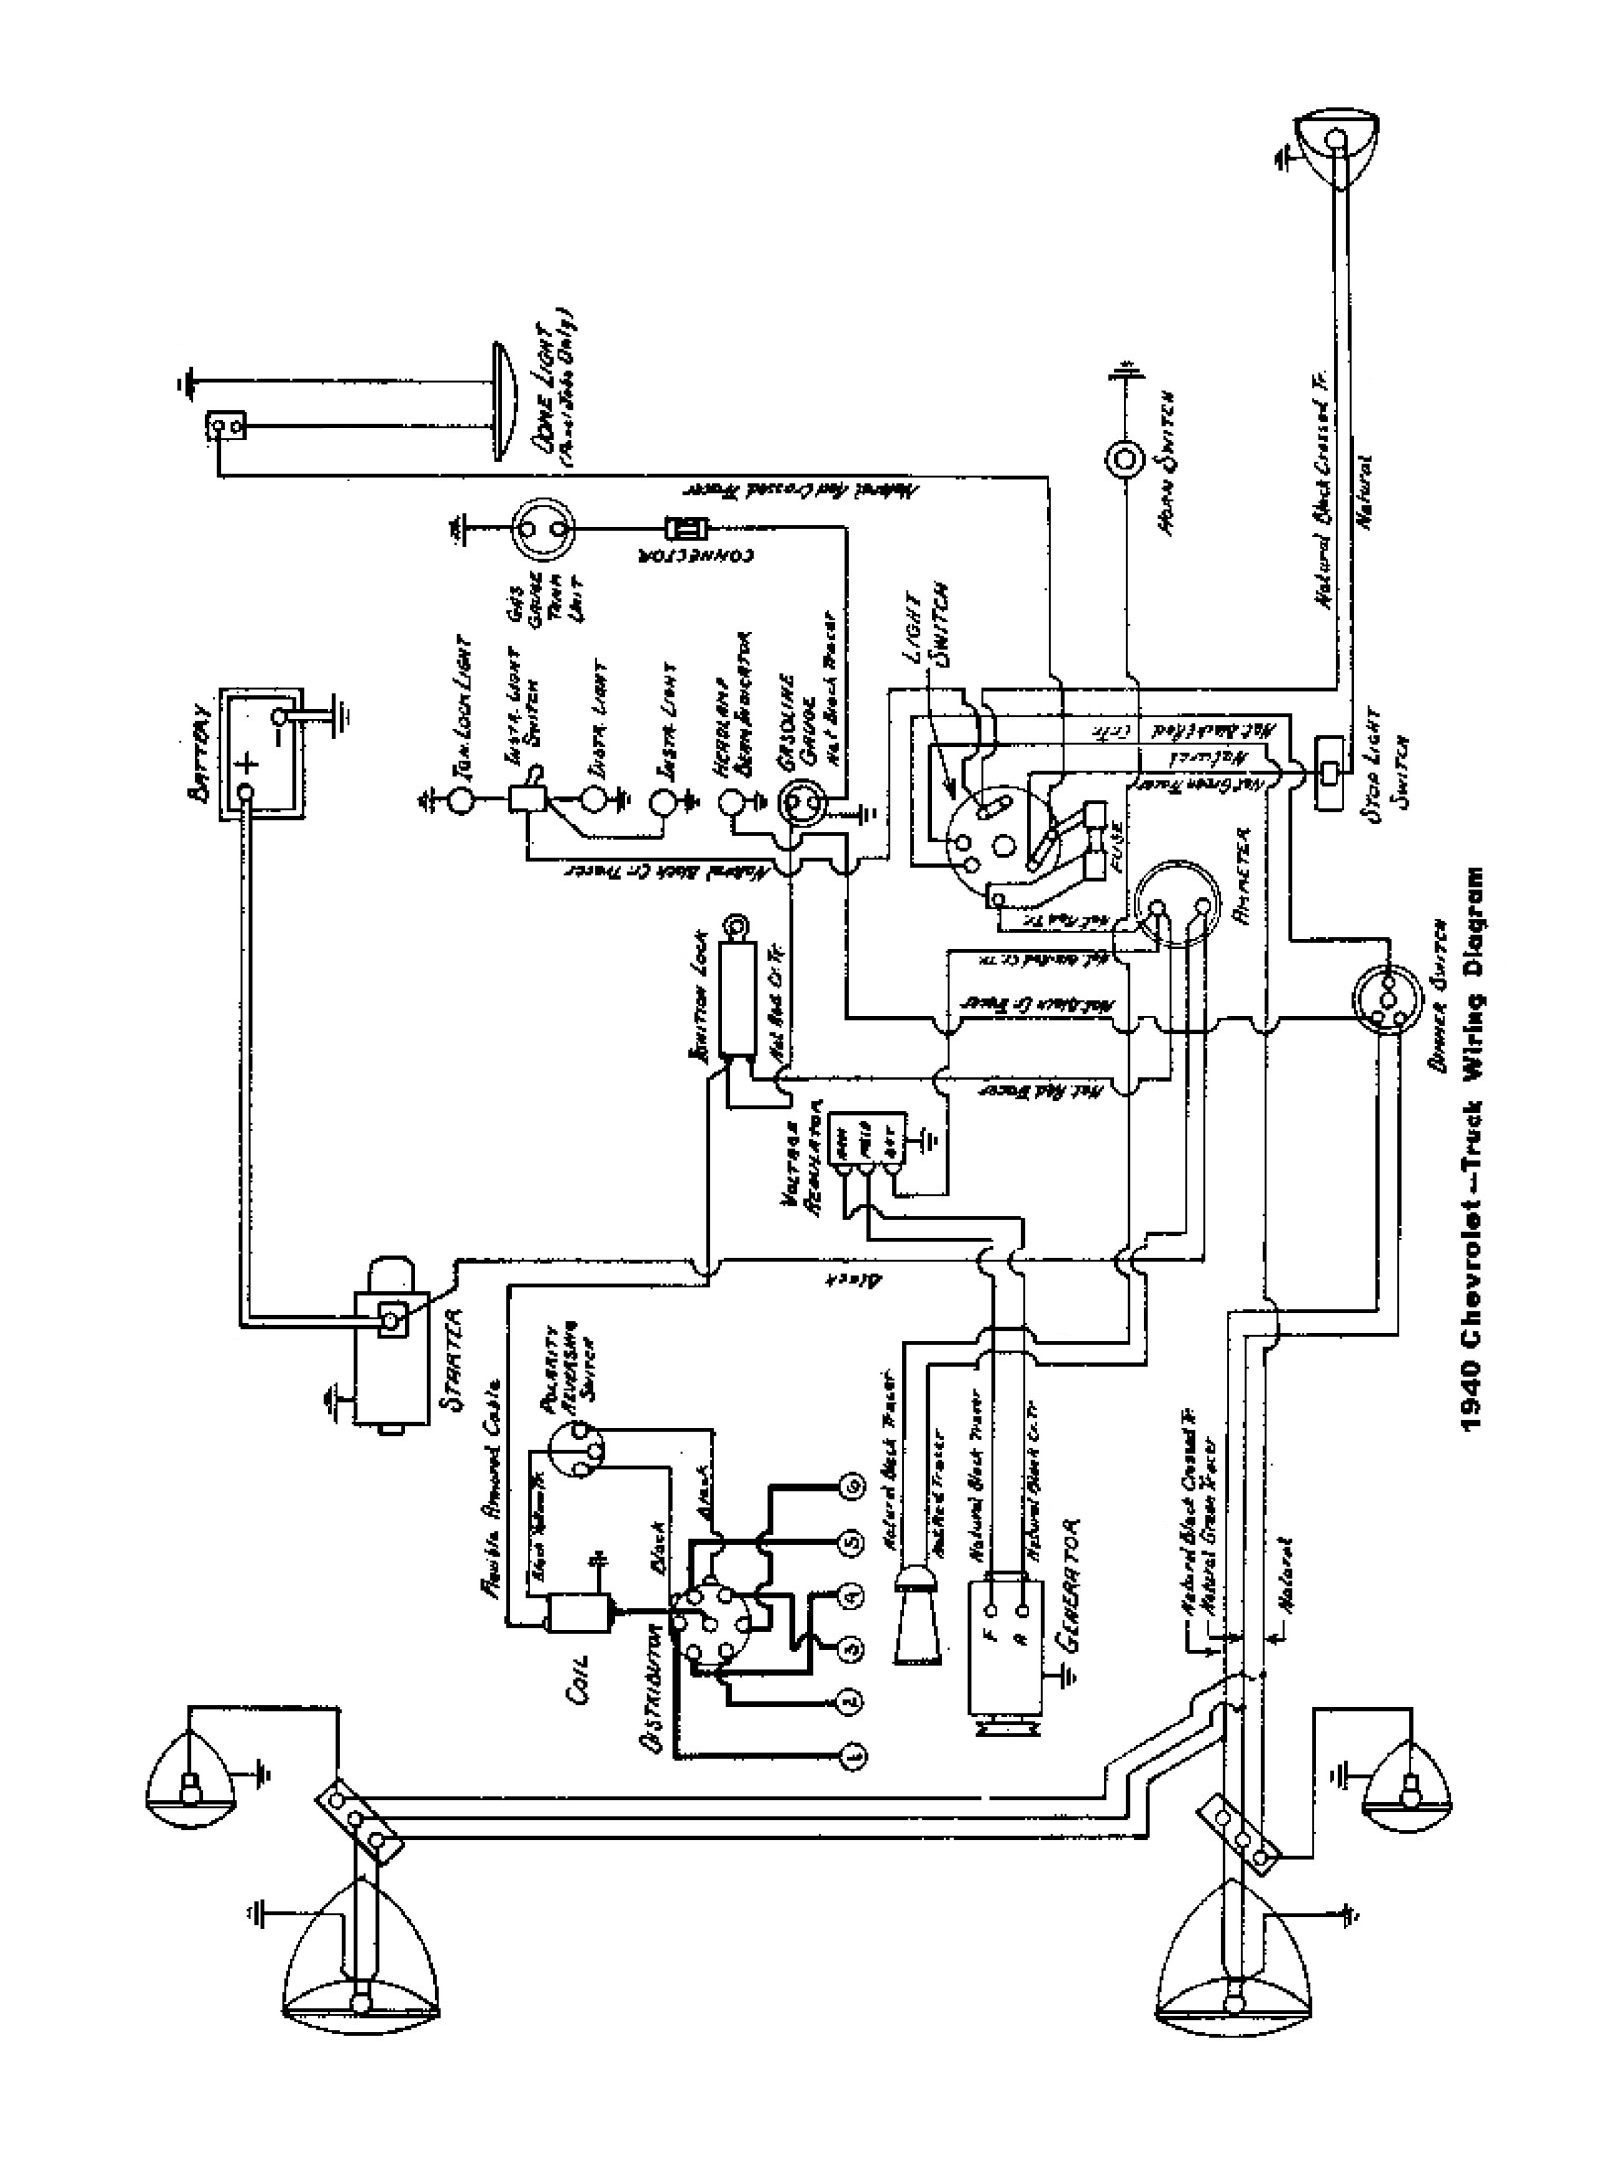 1933 chevrolet wiring diagram